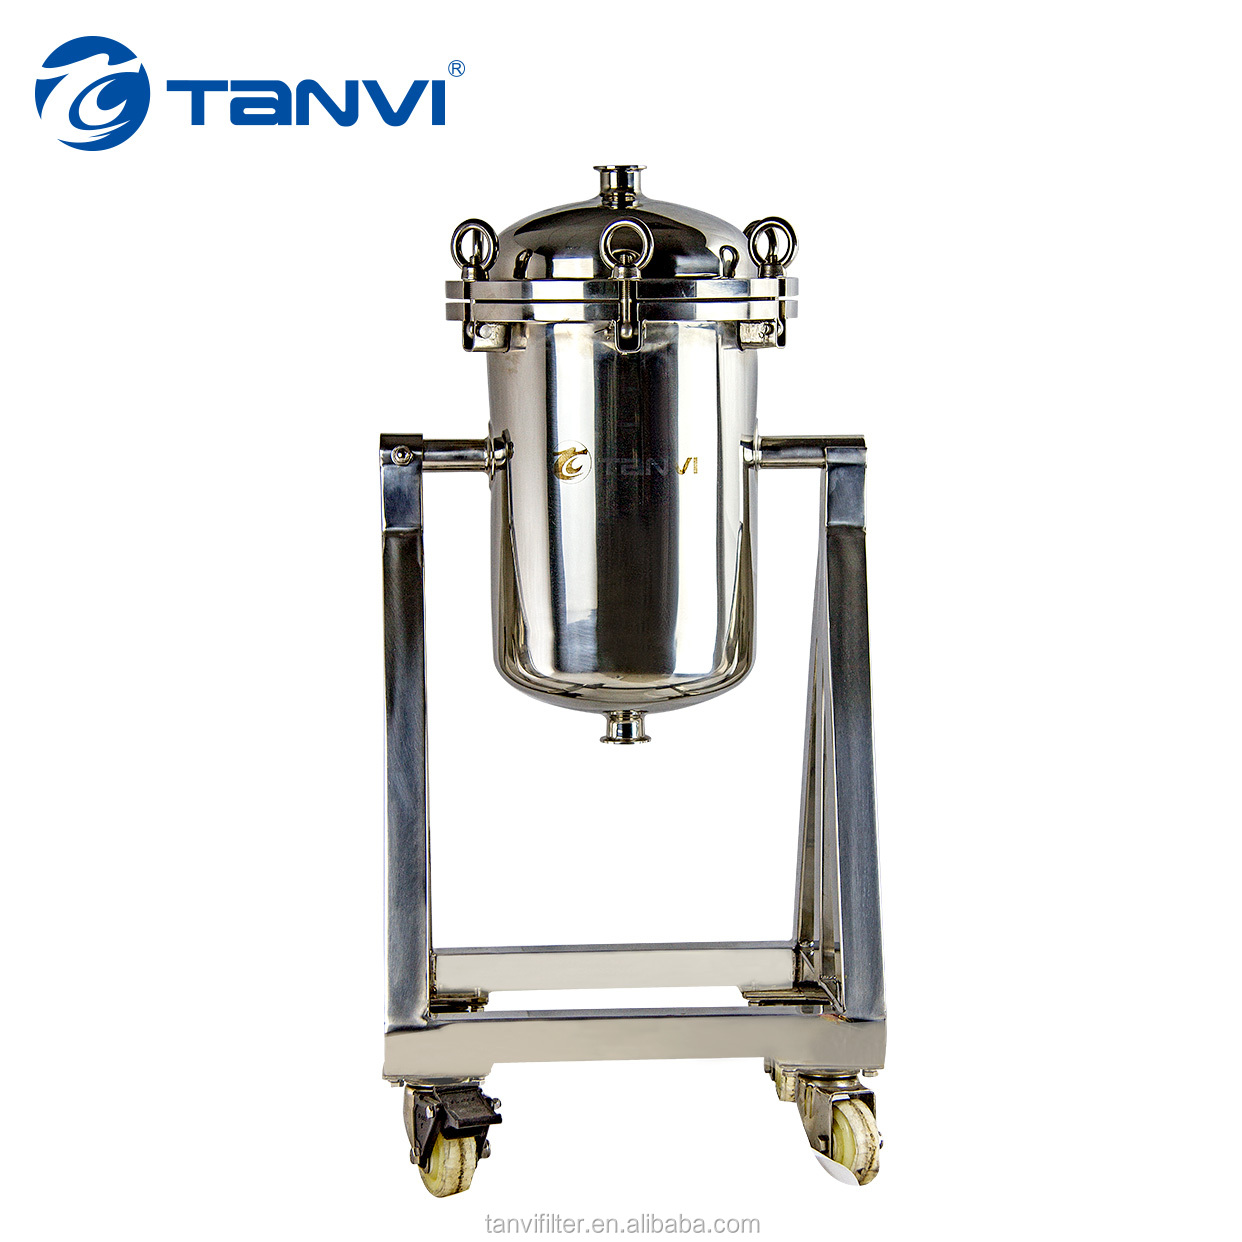 40 micron Stainless steel alcohol filter machine&top ten selling products&System for types of chemical reagents